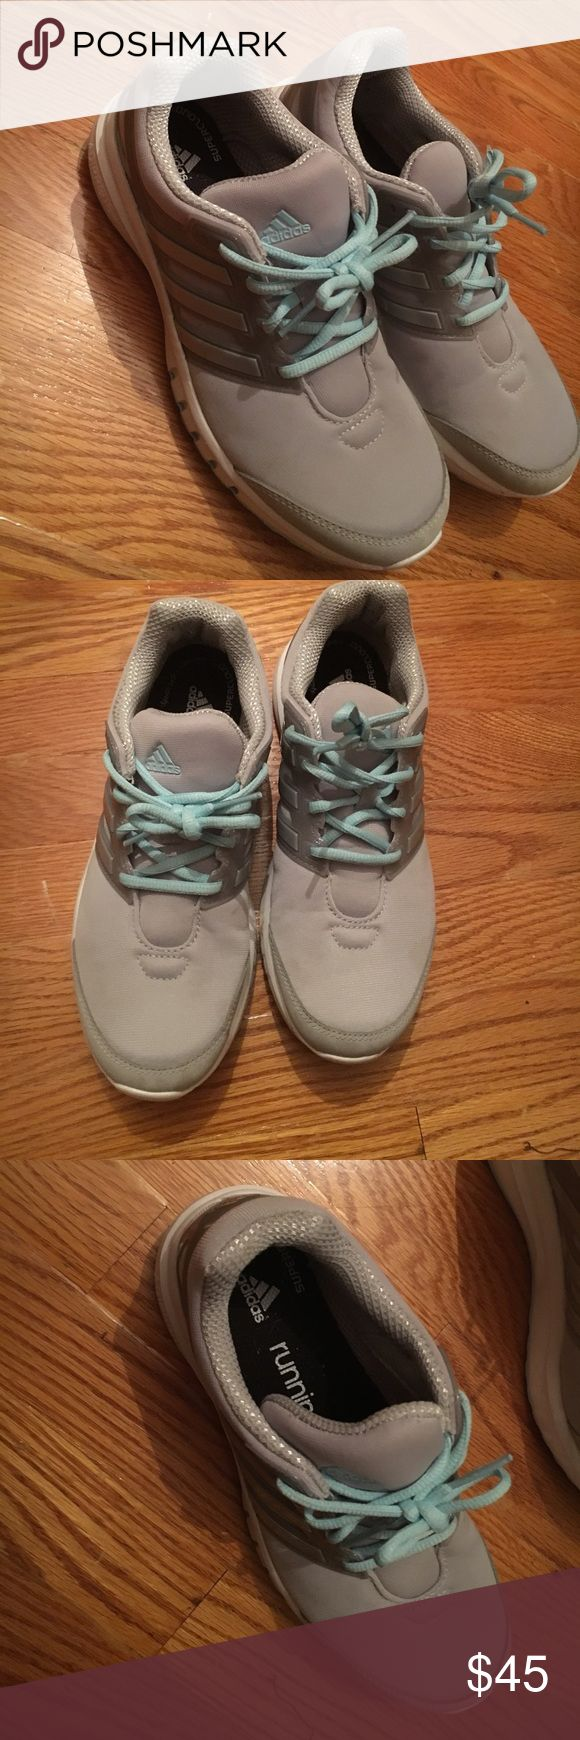 Adidas running shoes Worn once, like new adidas Shoes Athletic Shoes